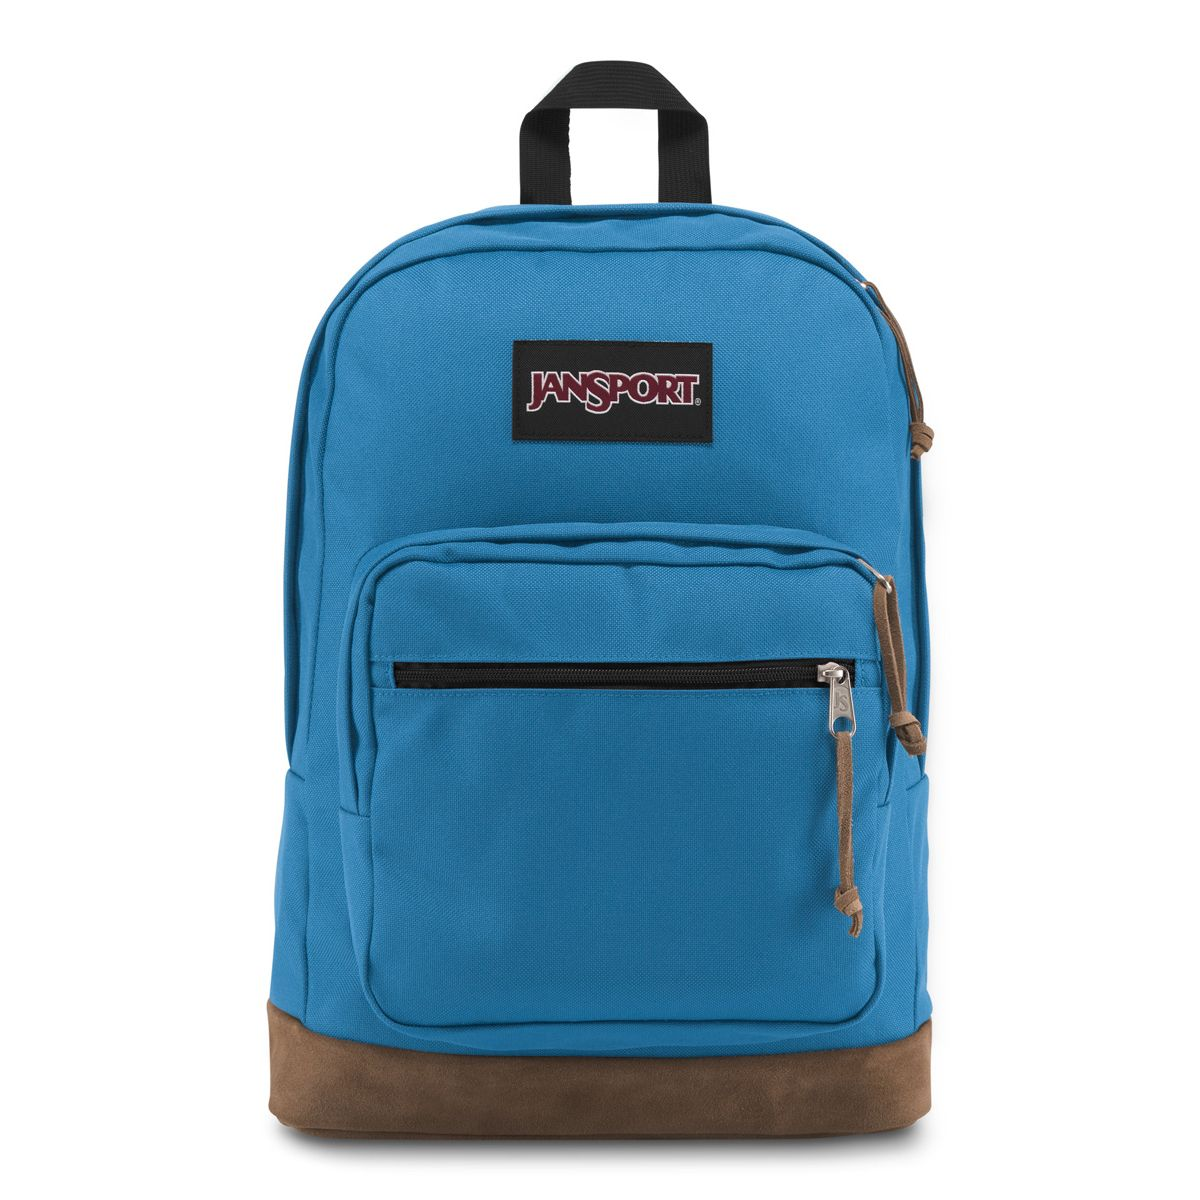 JanSport Right Pack Backpack in Blue Jay